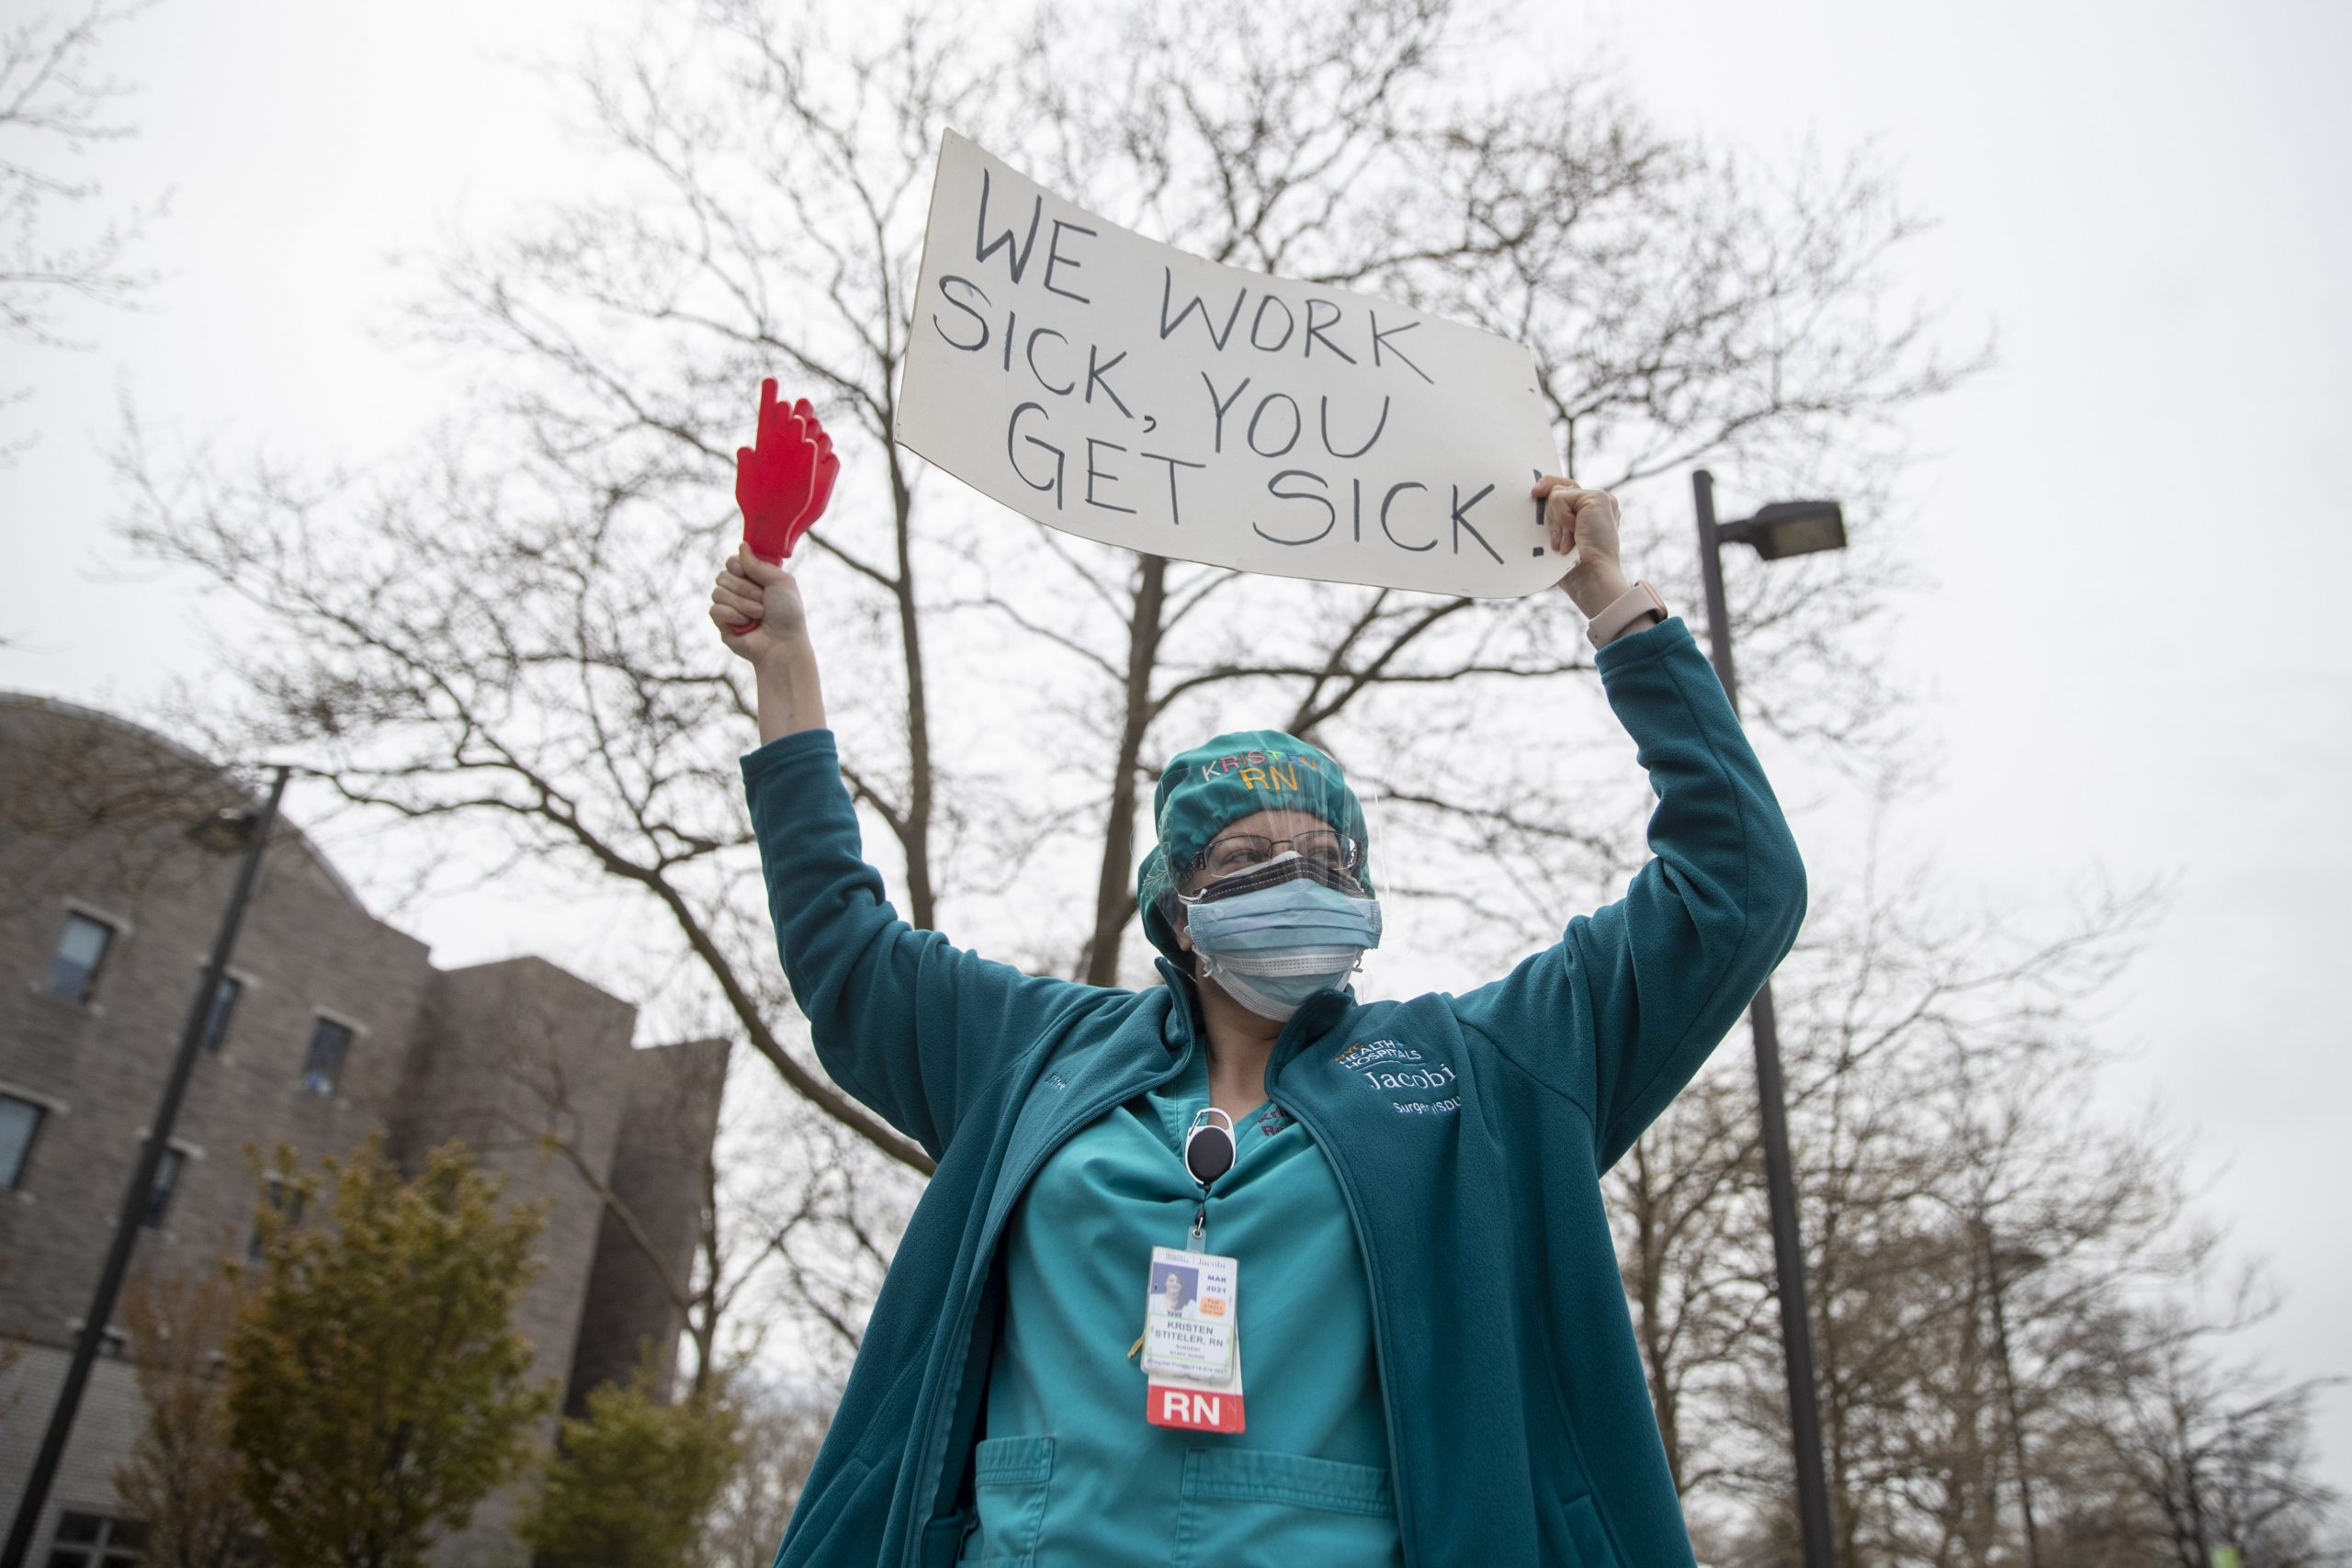 Ontario to give workers 3 paid sick days, reimburse businesses costs